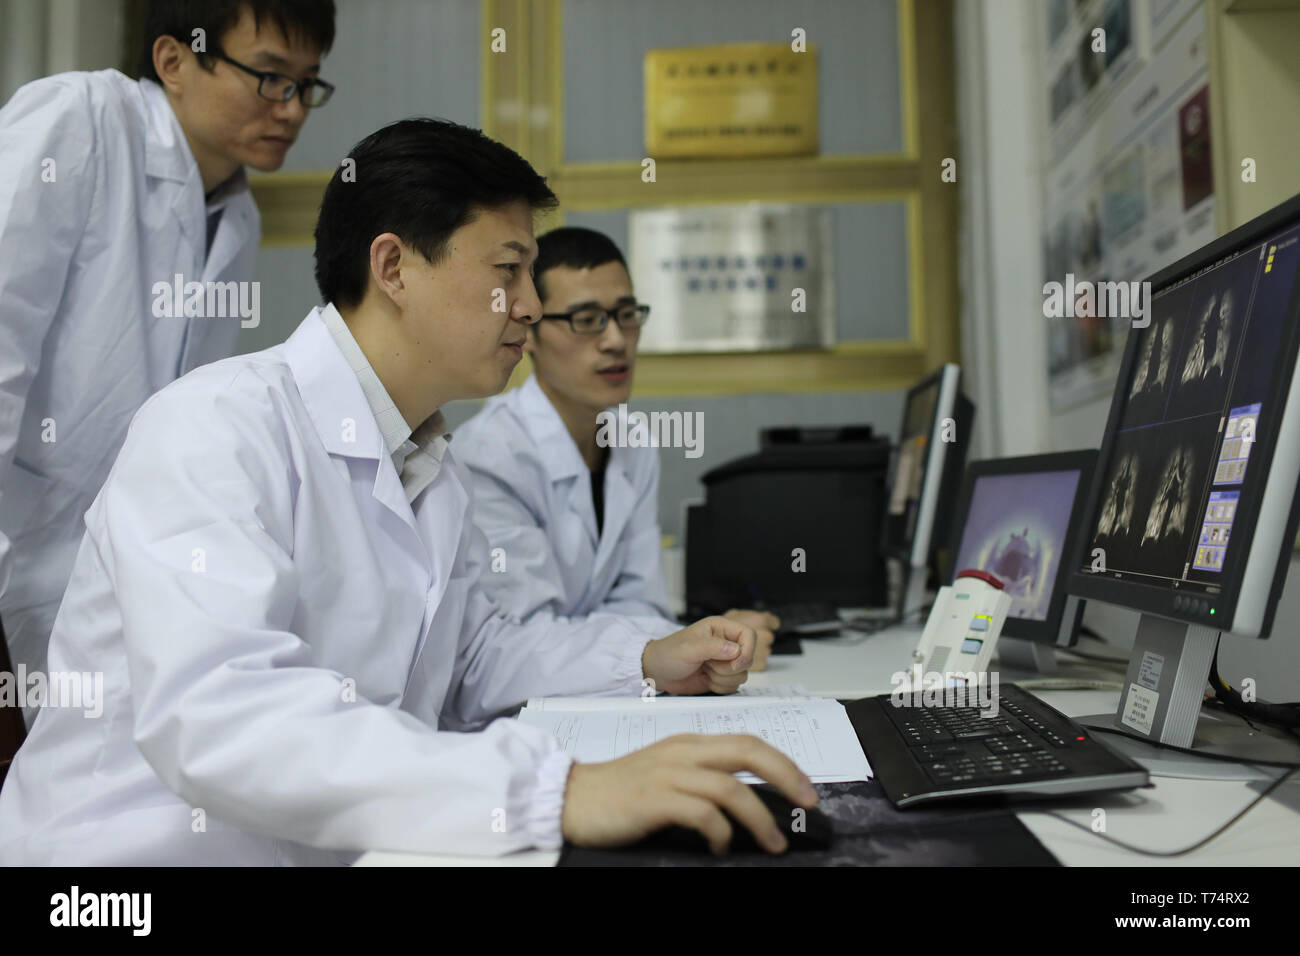 (190504) -- WUHAN, May 4, 2019 (Xinhua) -- Zhou Xin (C) discusses with his colleagues about the quality of human lung magnetic resonance images at Wuhan Institute of Physics and Mathematics of Chinese Academy of Sciences in Wuhan, capital of central China's Hubei Province, April 18, 2019. Professor Zhou Xin is the deputy director of Wuhan Institute of Physics and Mathematics of Chinese Academy of Sciences, State Key Laboratory of Magnetic Resonance and Atomic and Molecular Physics, and National Center for Magnetic Resonance in Wuhan. He is interested in ultrasensitive magnetic resonance imagin - Stock Image